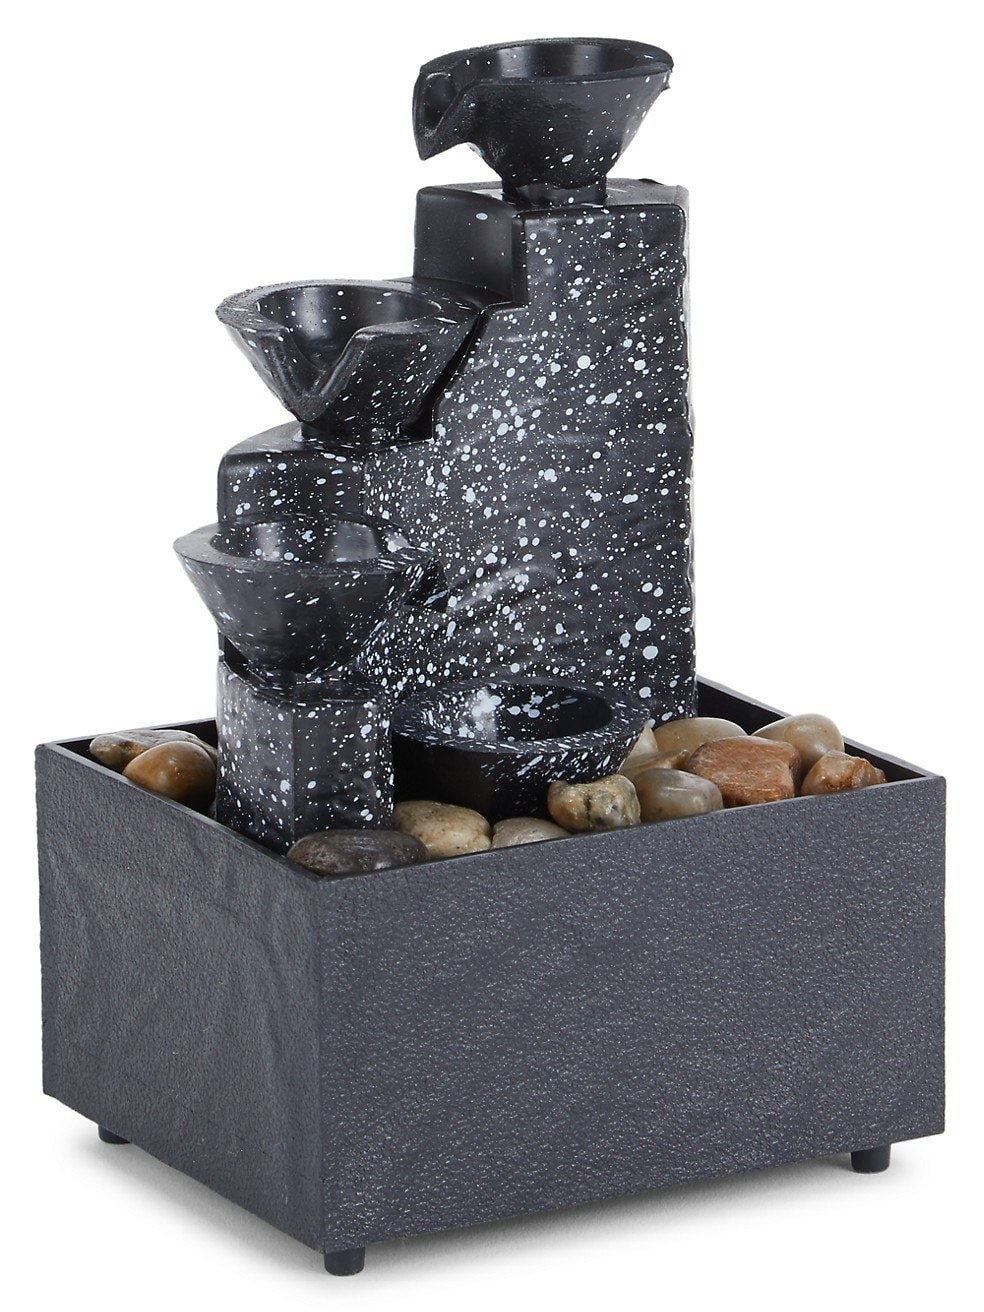 the black speckled fountain